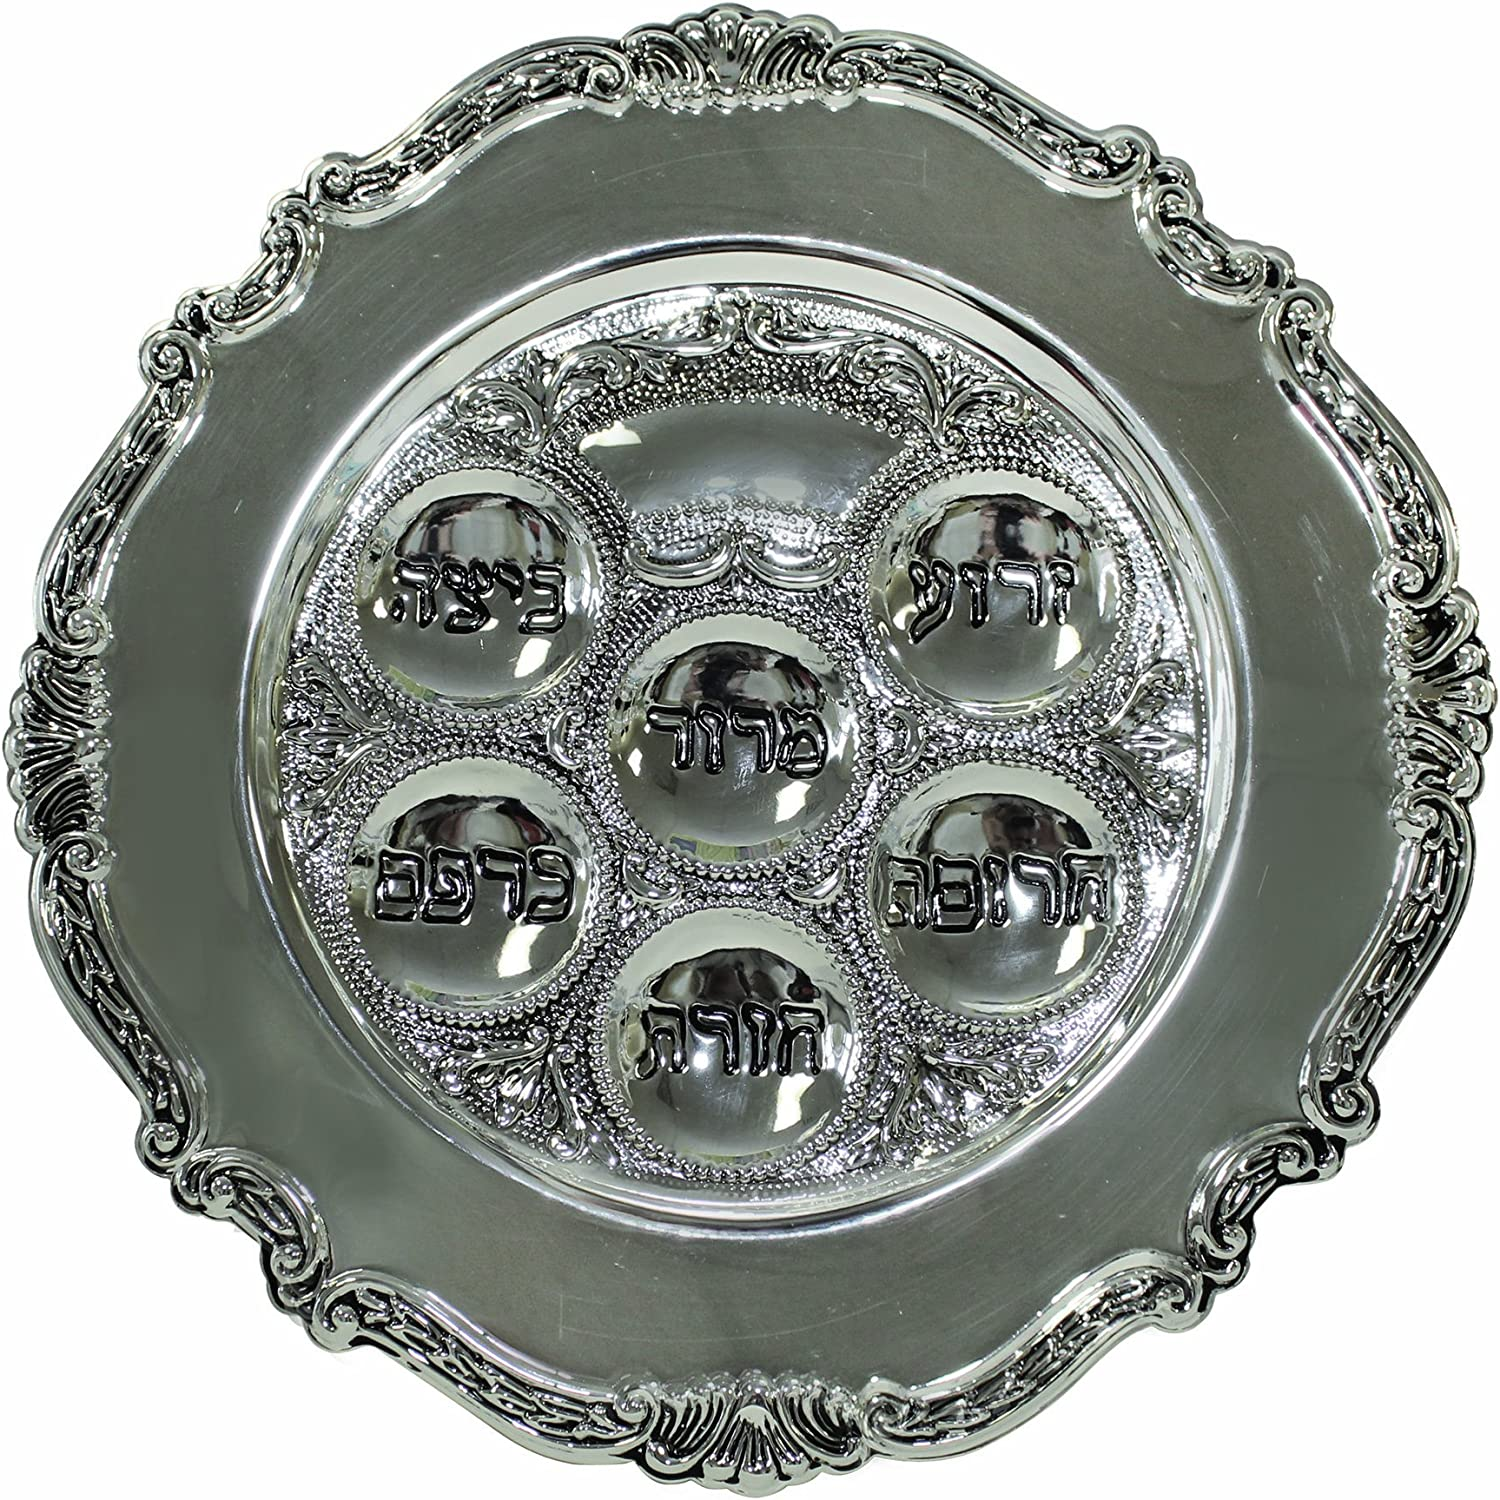 Indianapolis Max 76% OFF Mall Majestic Giftware SPTF12362BL1 Passover Plate Si 12-Inch Seder